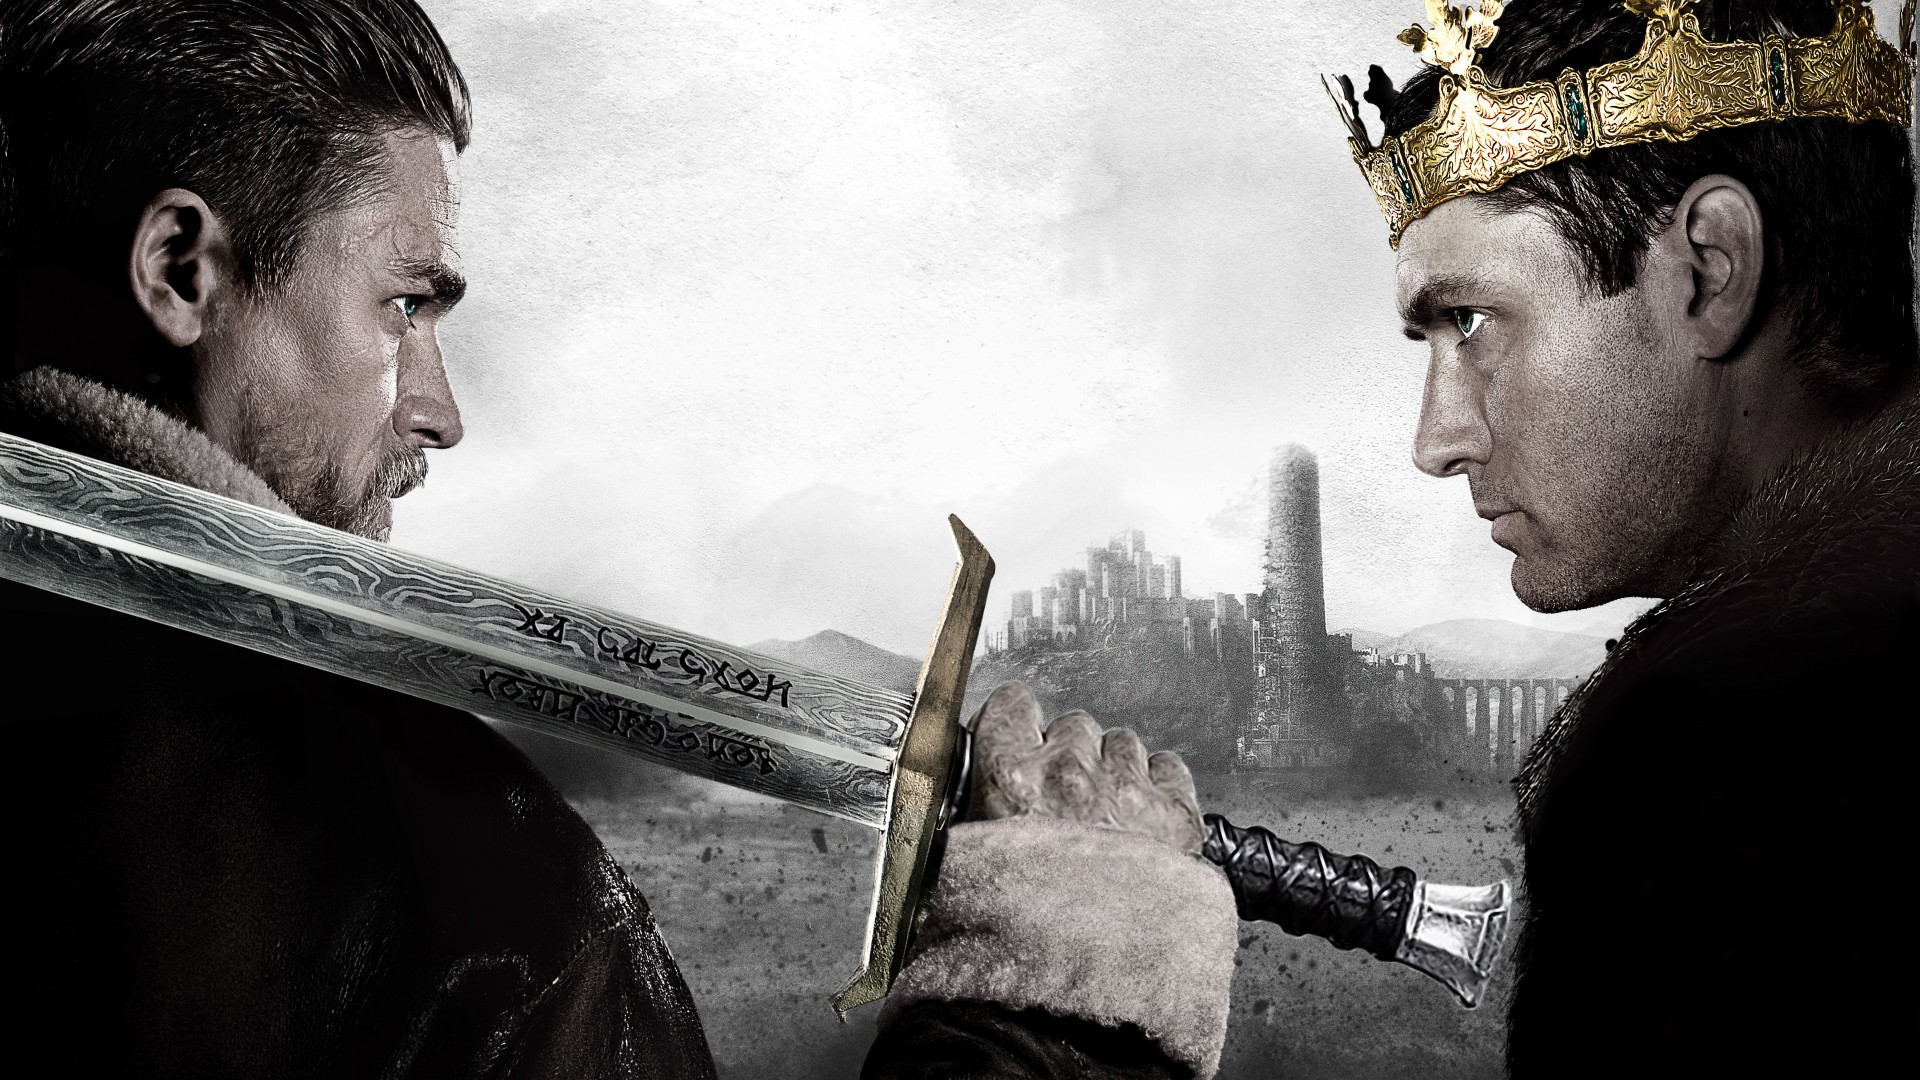 Luuk vs Luuk: King Arthur, Legend of the Sword